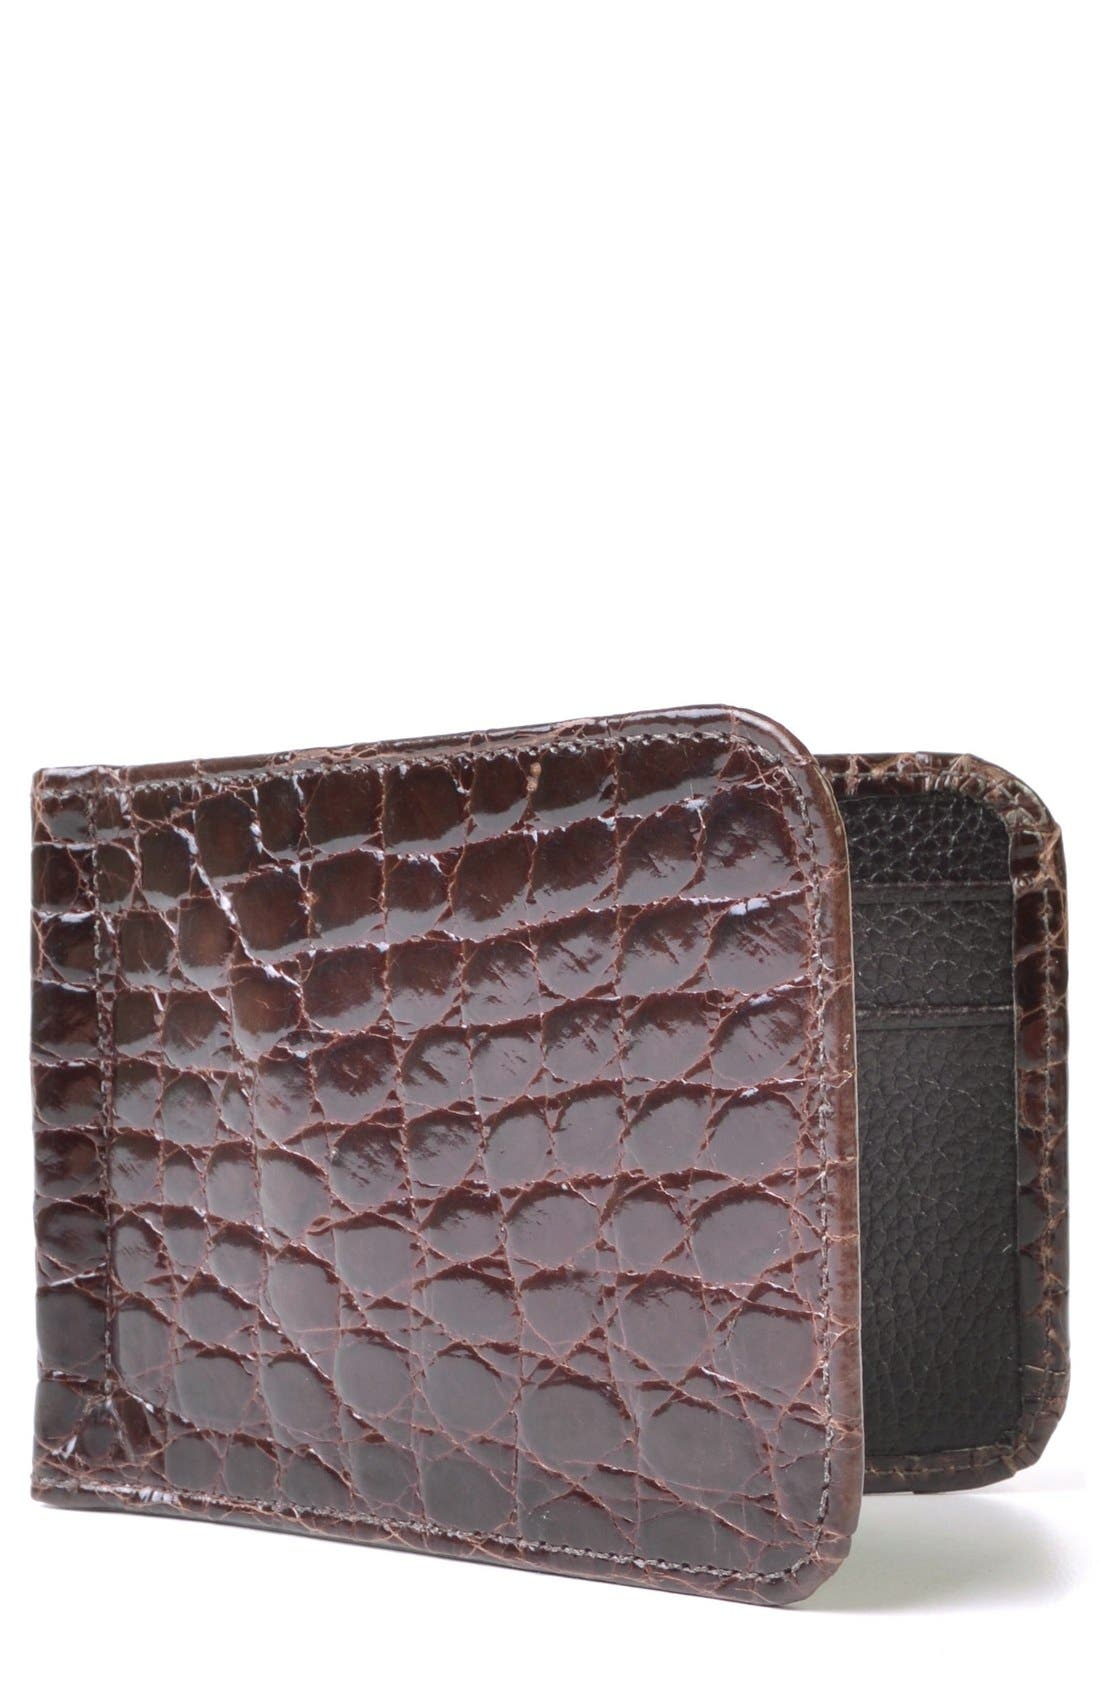 MARTIN DINGMAN Joseph Genuine American Alligator Leather Money Clip Wallet